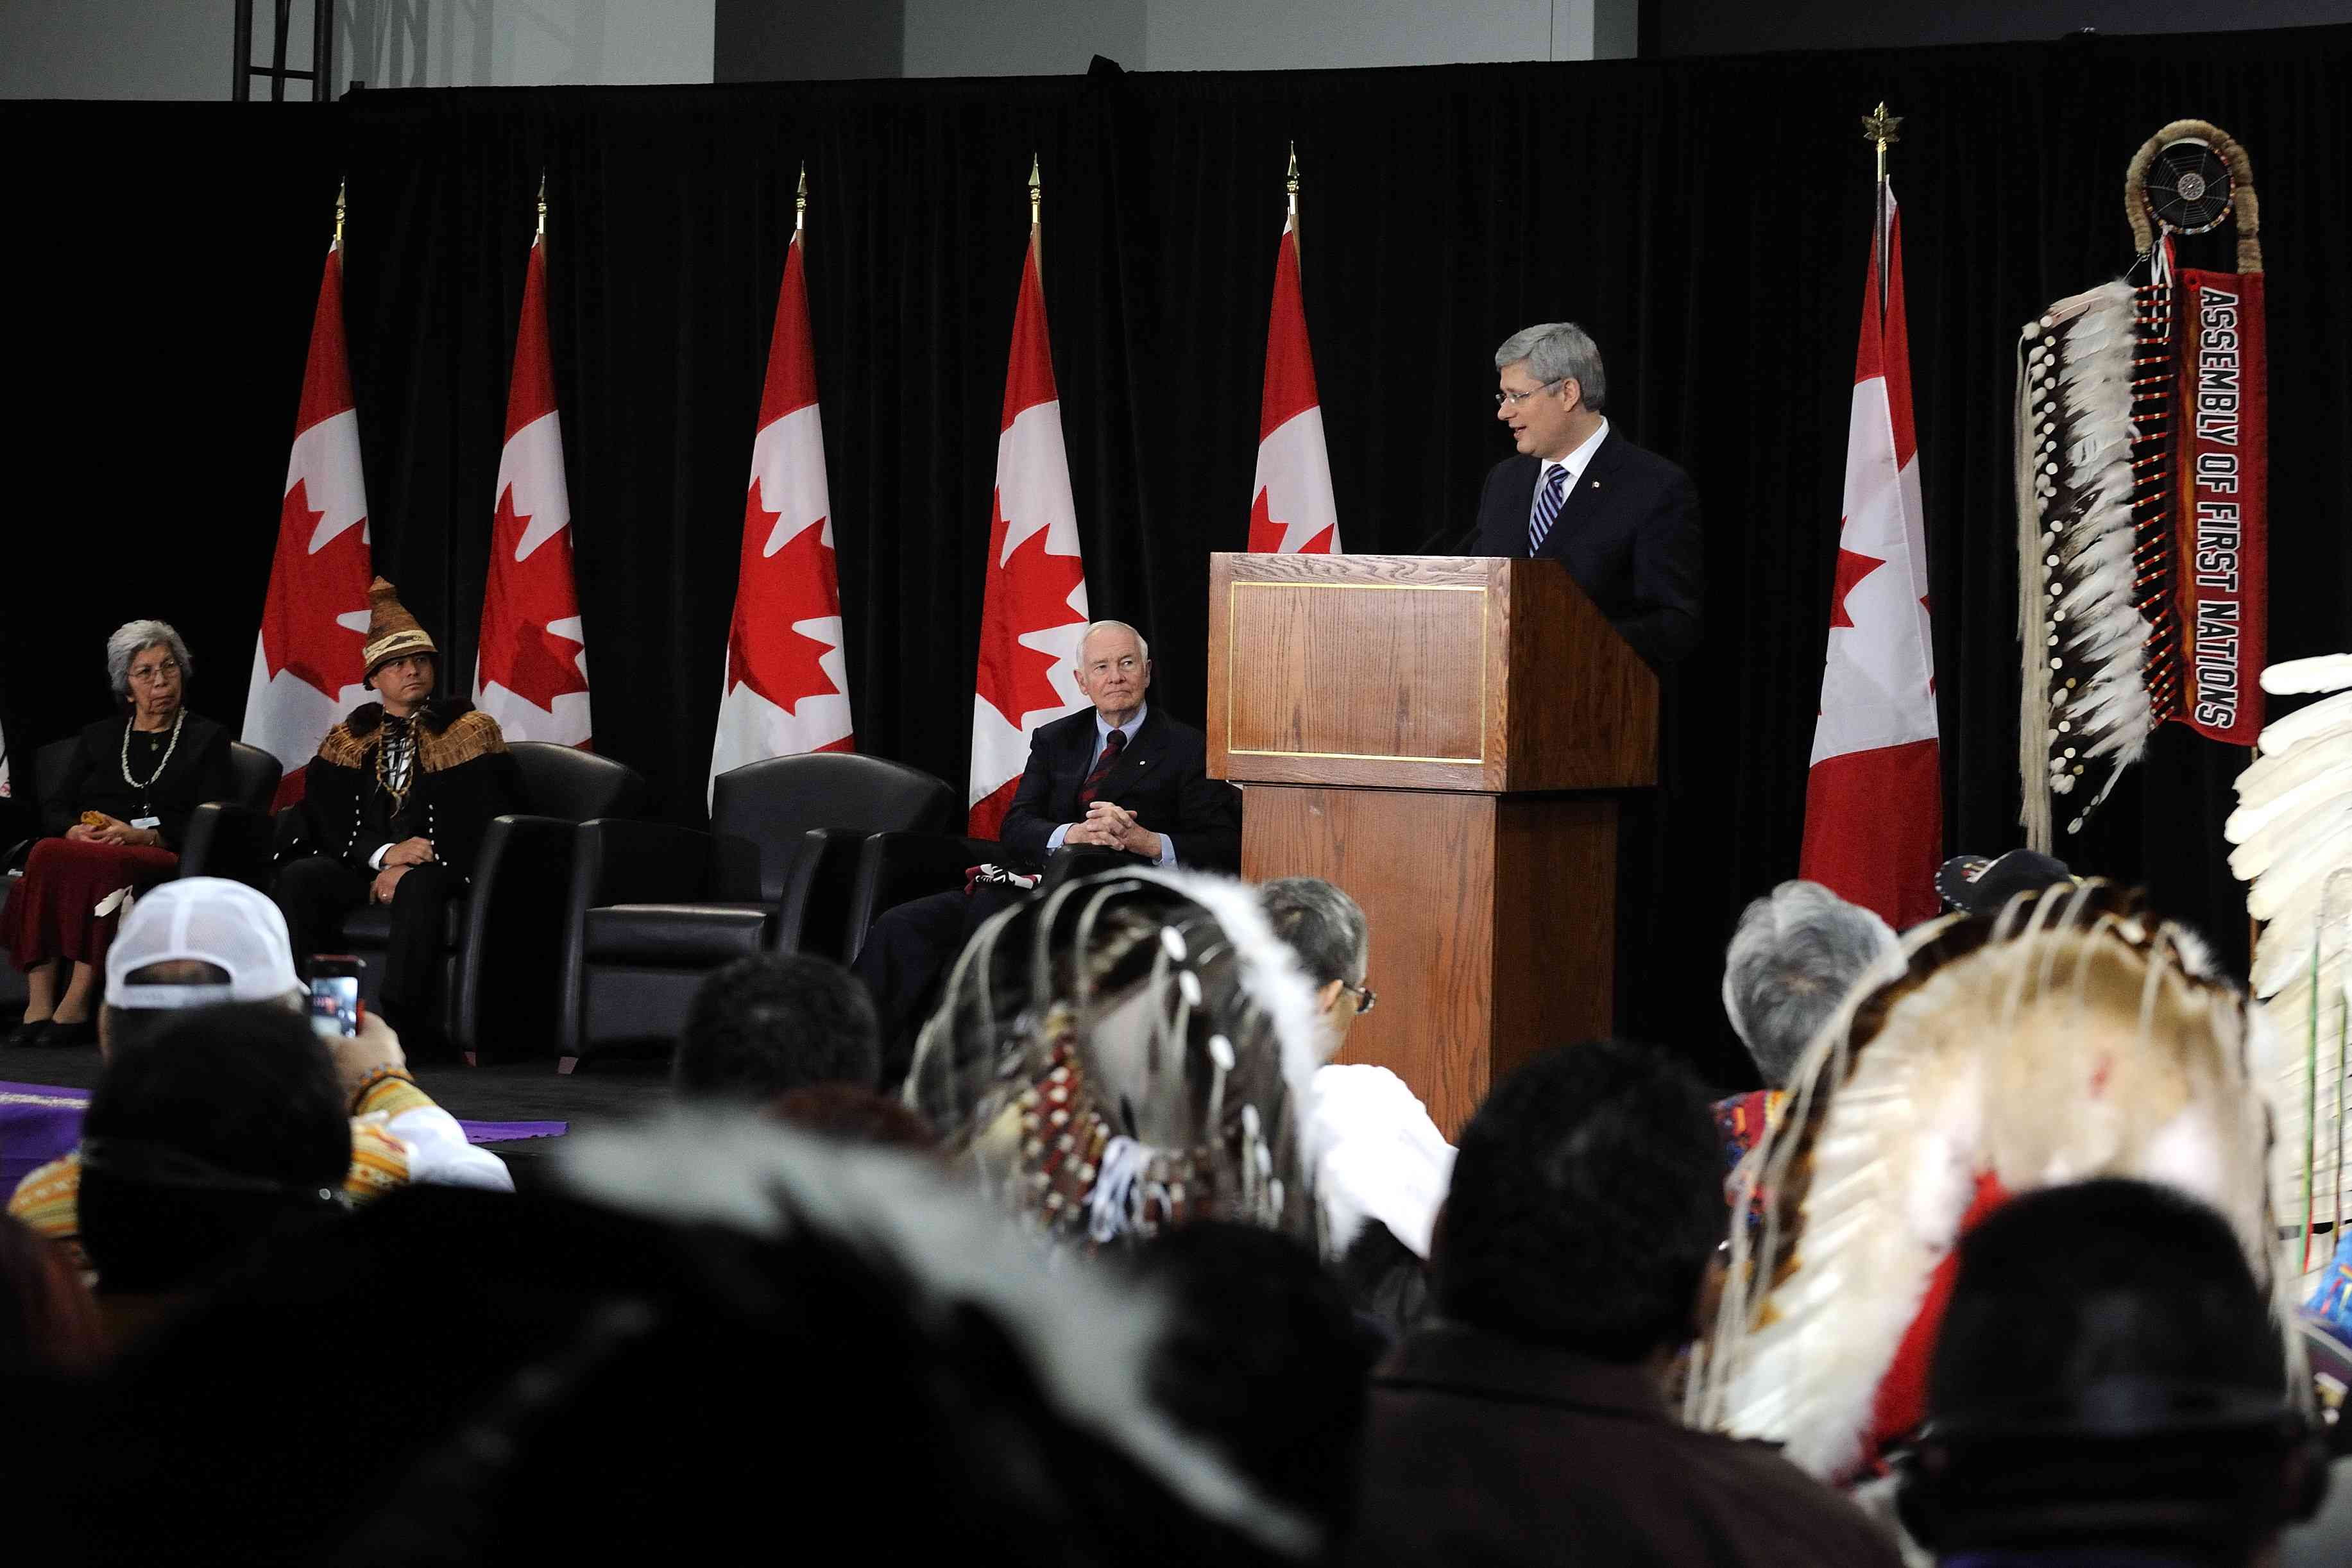 The Right Honourable Stephen Harper, Prime Minister of Canada, delivered an address.